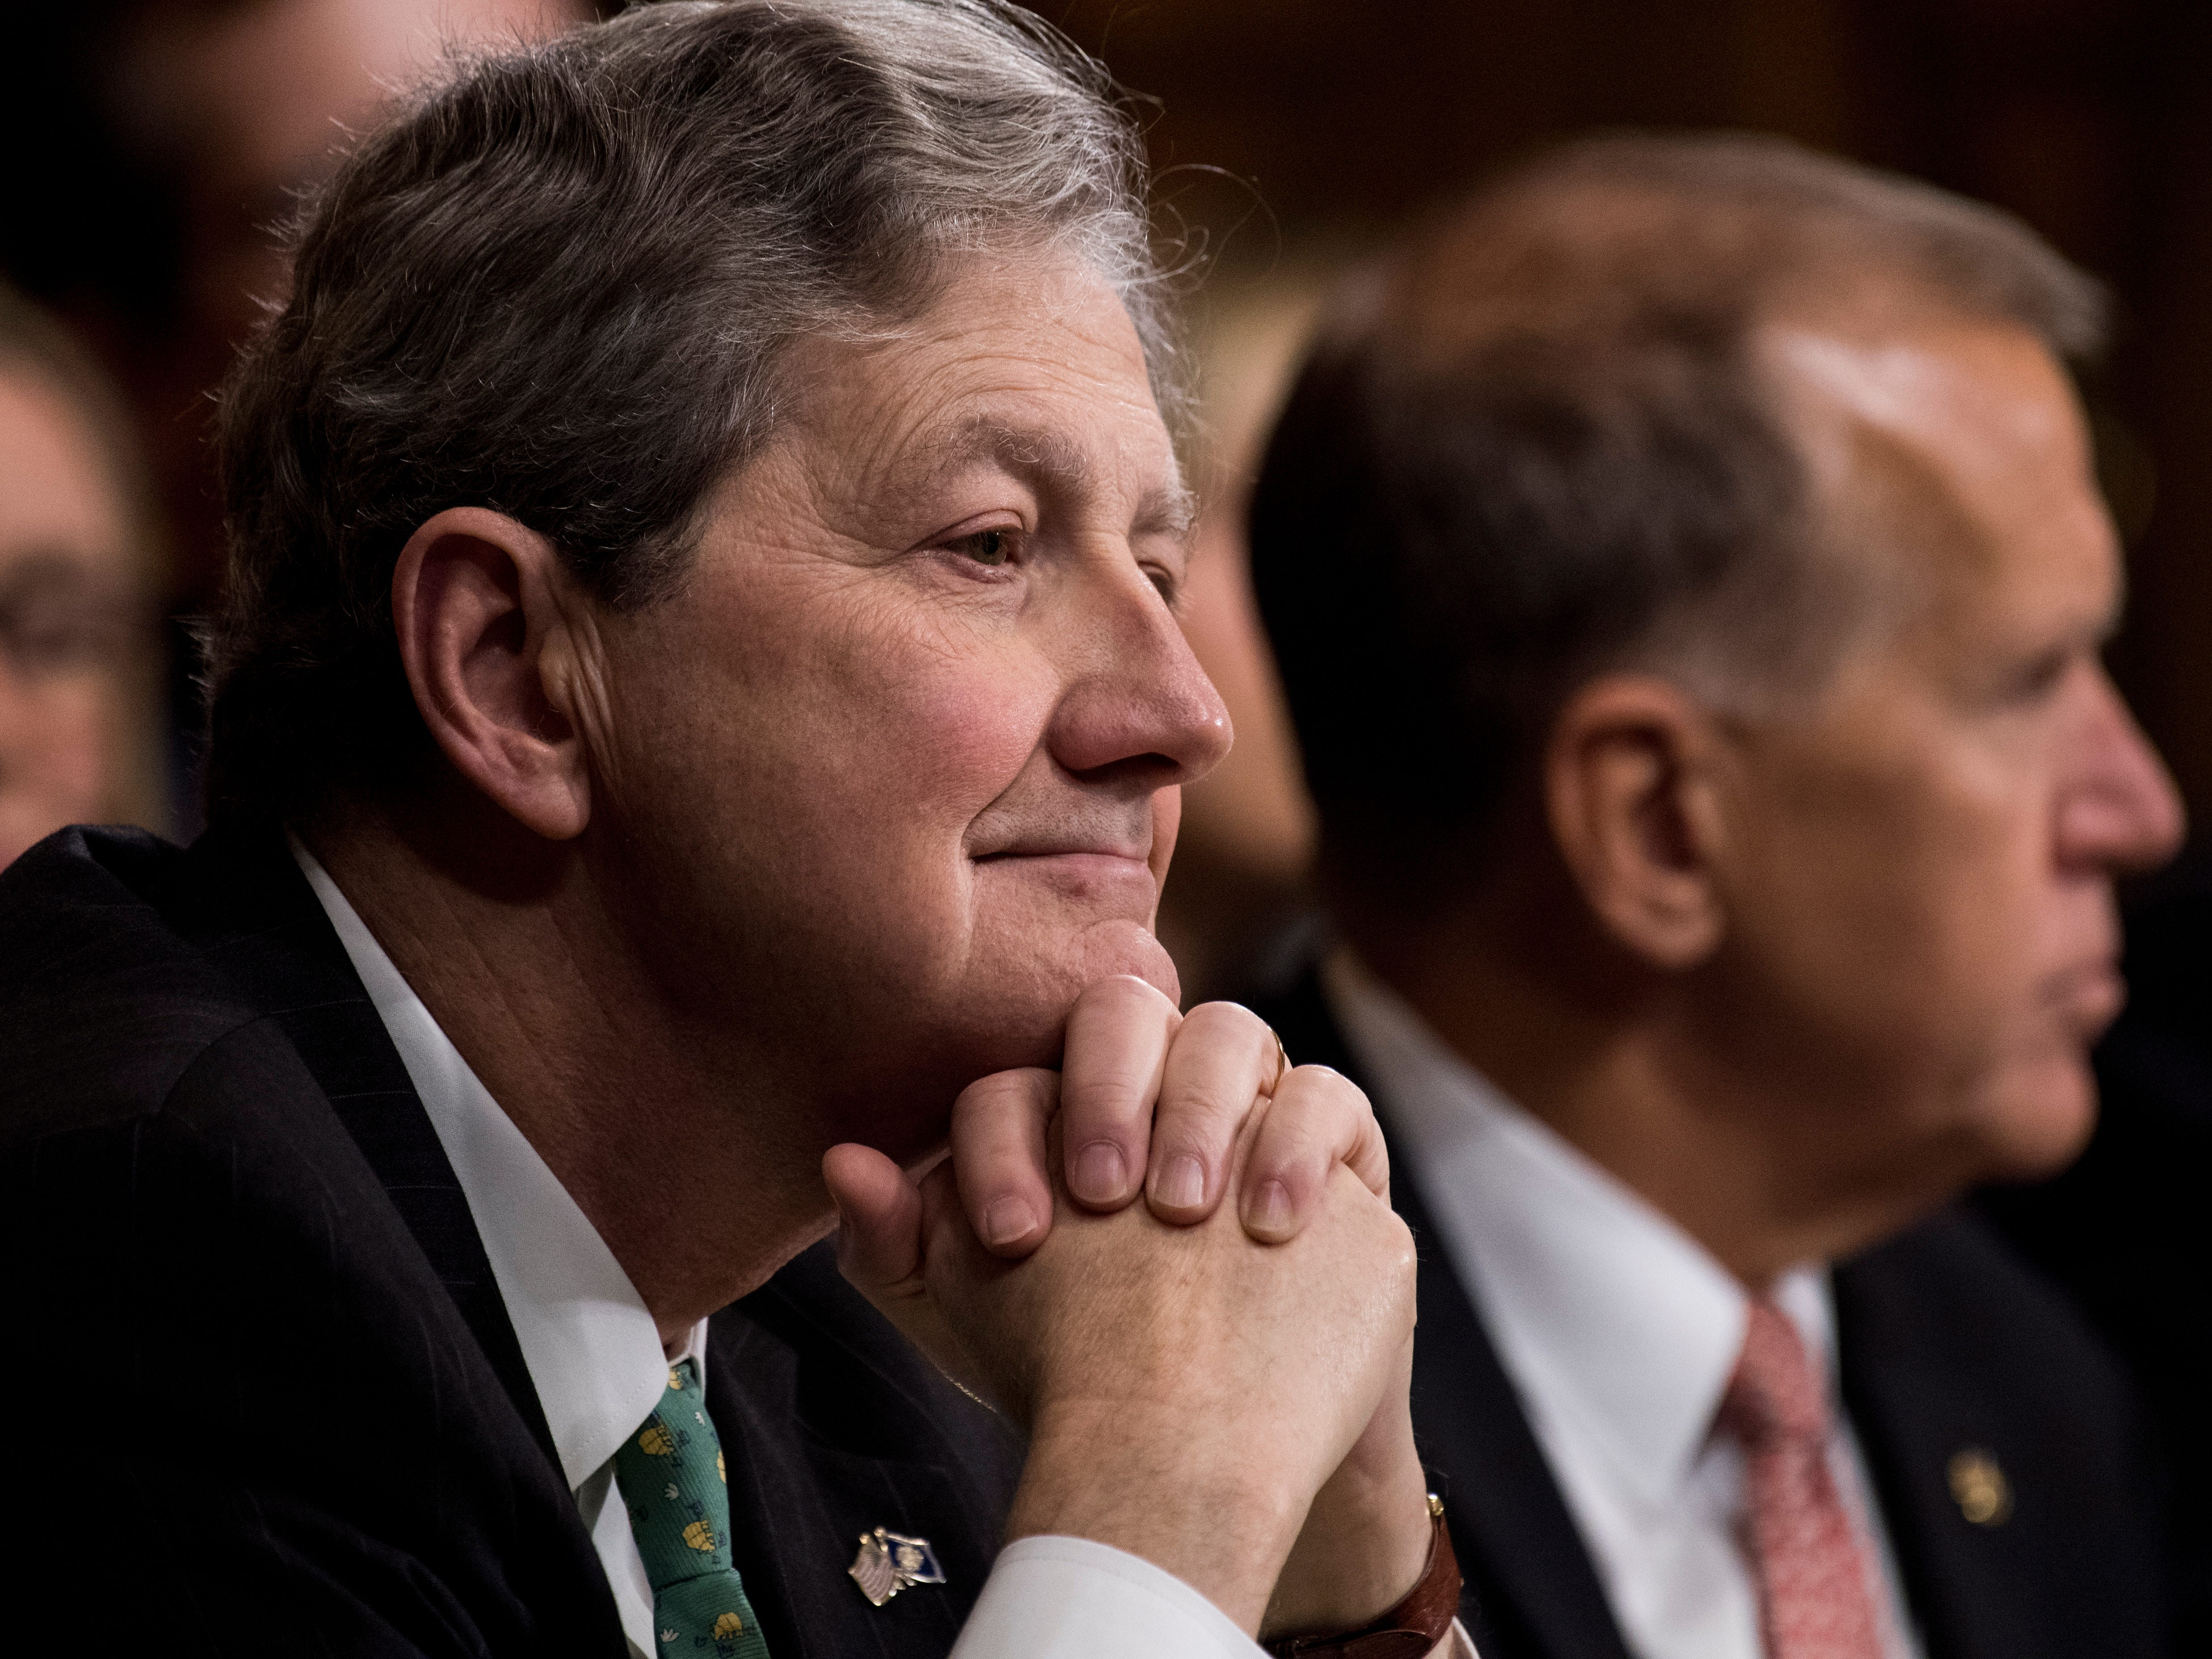 epa07051721 Senator John Kennedy (L), R-La., listens to Christine Blasey Ford, (unseen) testify during the Senate Judiciary Committee hearing on the nomination of Brett Kavanaugh to be an associate justice of the Supreme Court of the United States, on Capitol Hill in Washington, DC, USA, 27 September 2018. US President Donald J. Trump's nominee to be a US Supreme Court associate justice Brett Kavanaugh is in a tumultuous confirmation process as multiple women have accused Kavanaugh of sexual misconduct.  EPA-EFE/TOM WILLIAMS / POOL